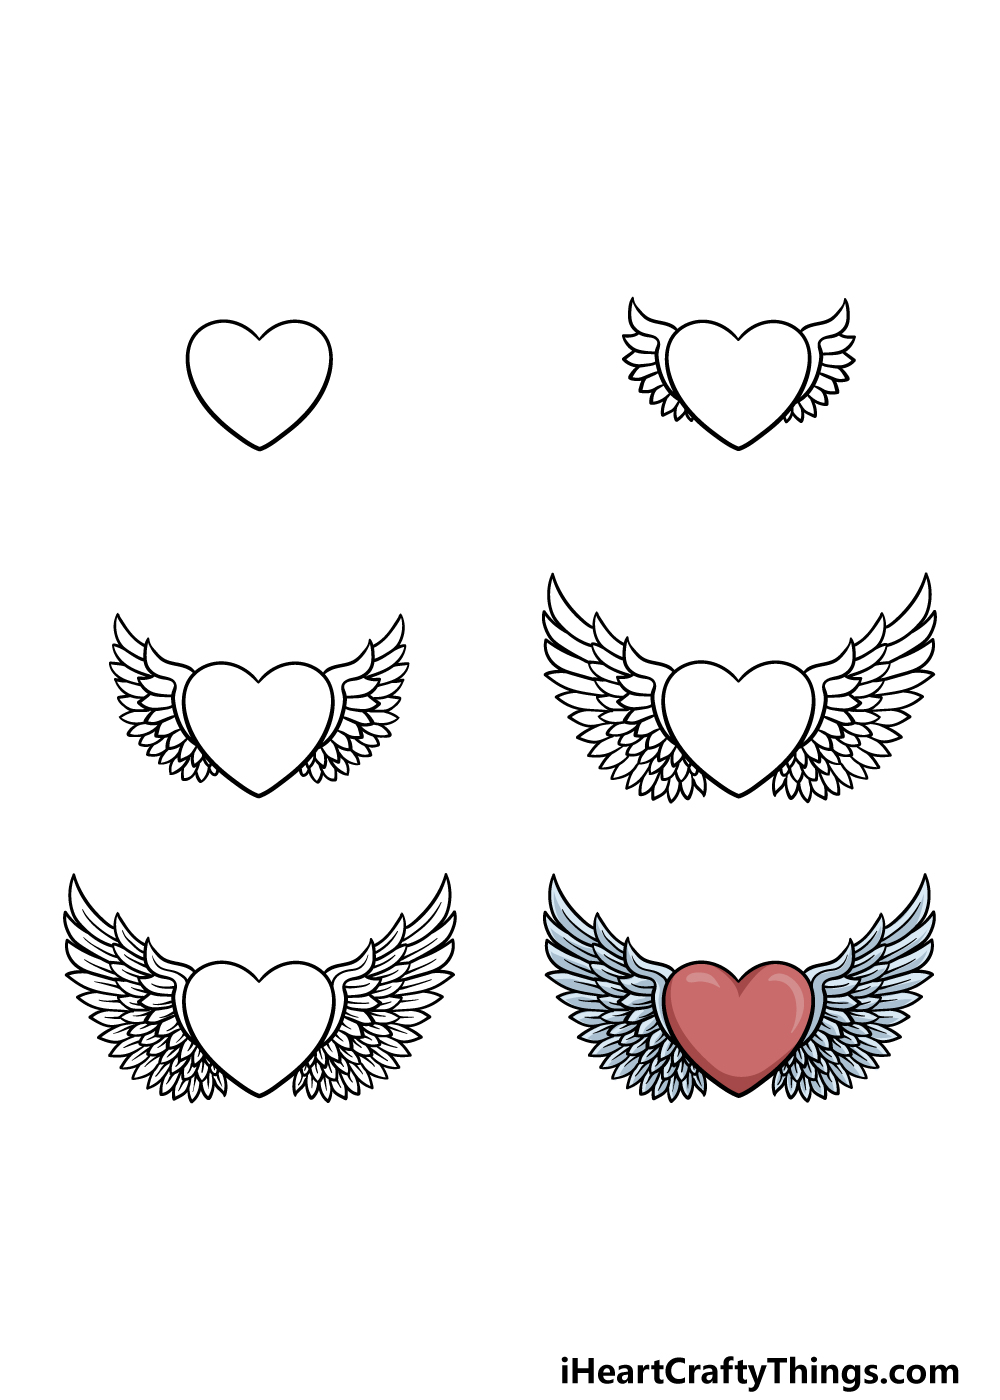 how to draw a heart with wings in 6 steps